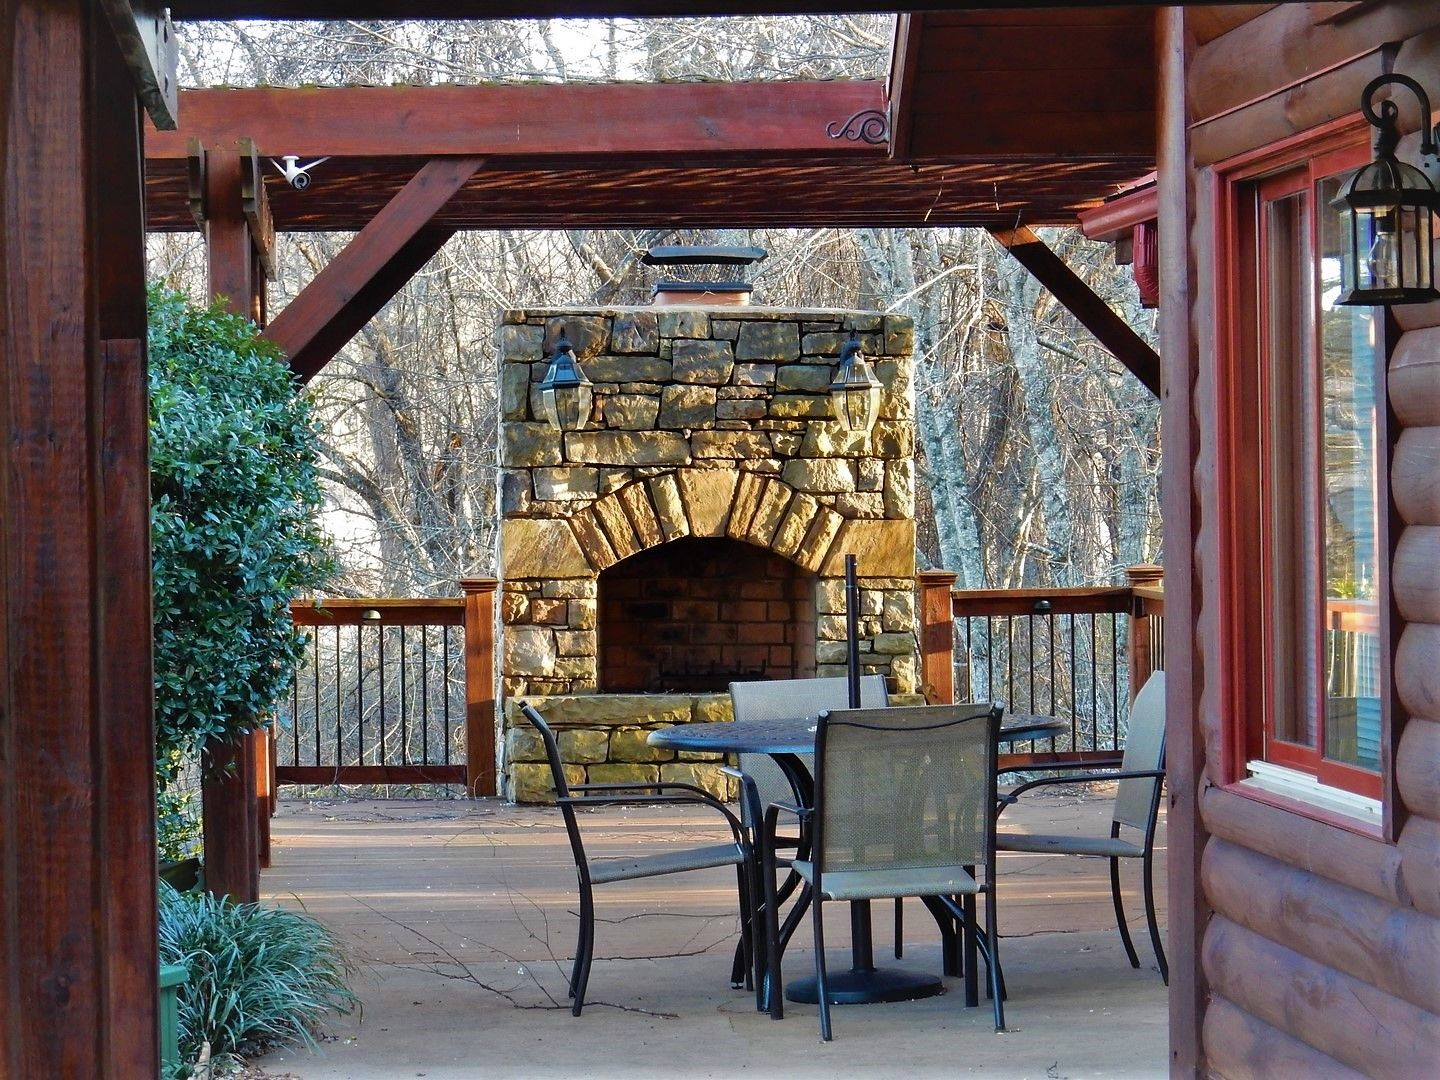 Best outdoor fireplace and resort amenities. Carolina